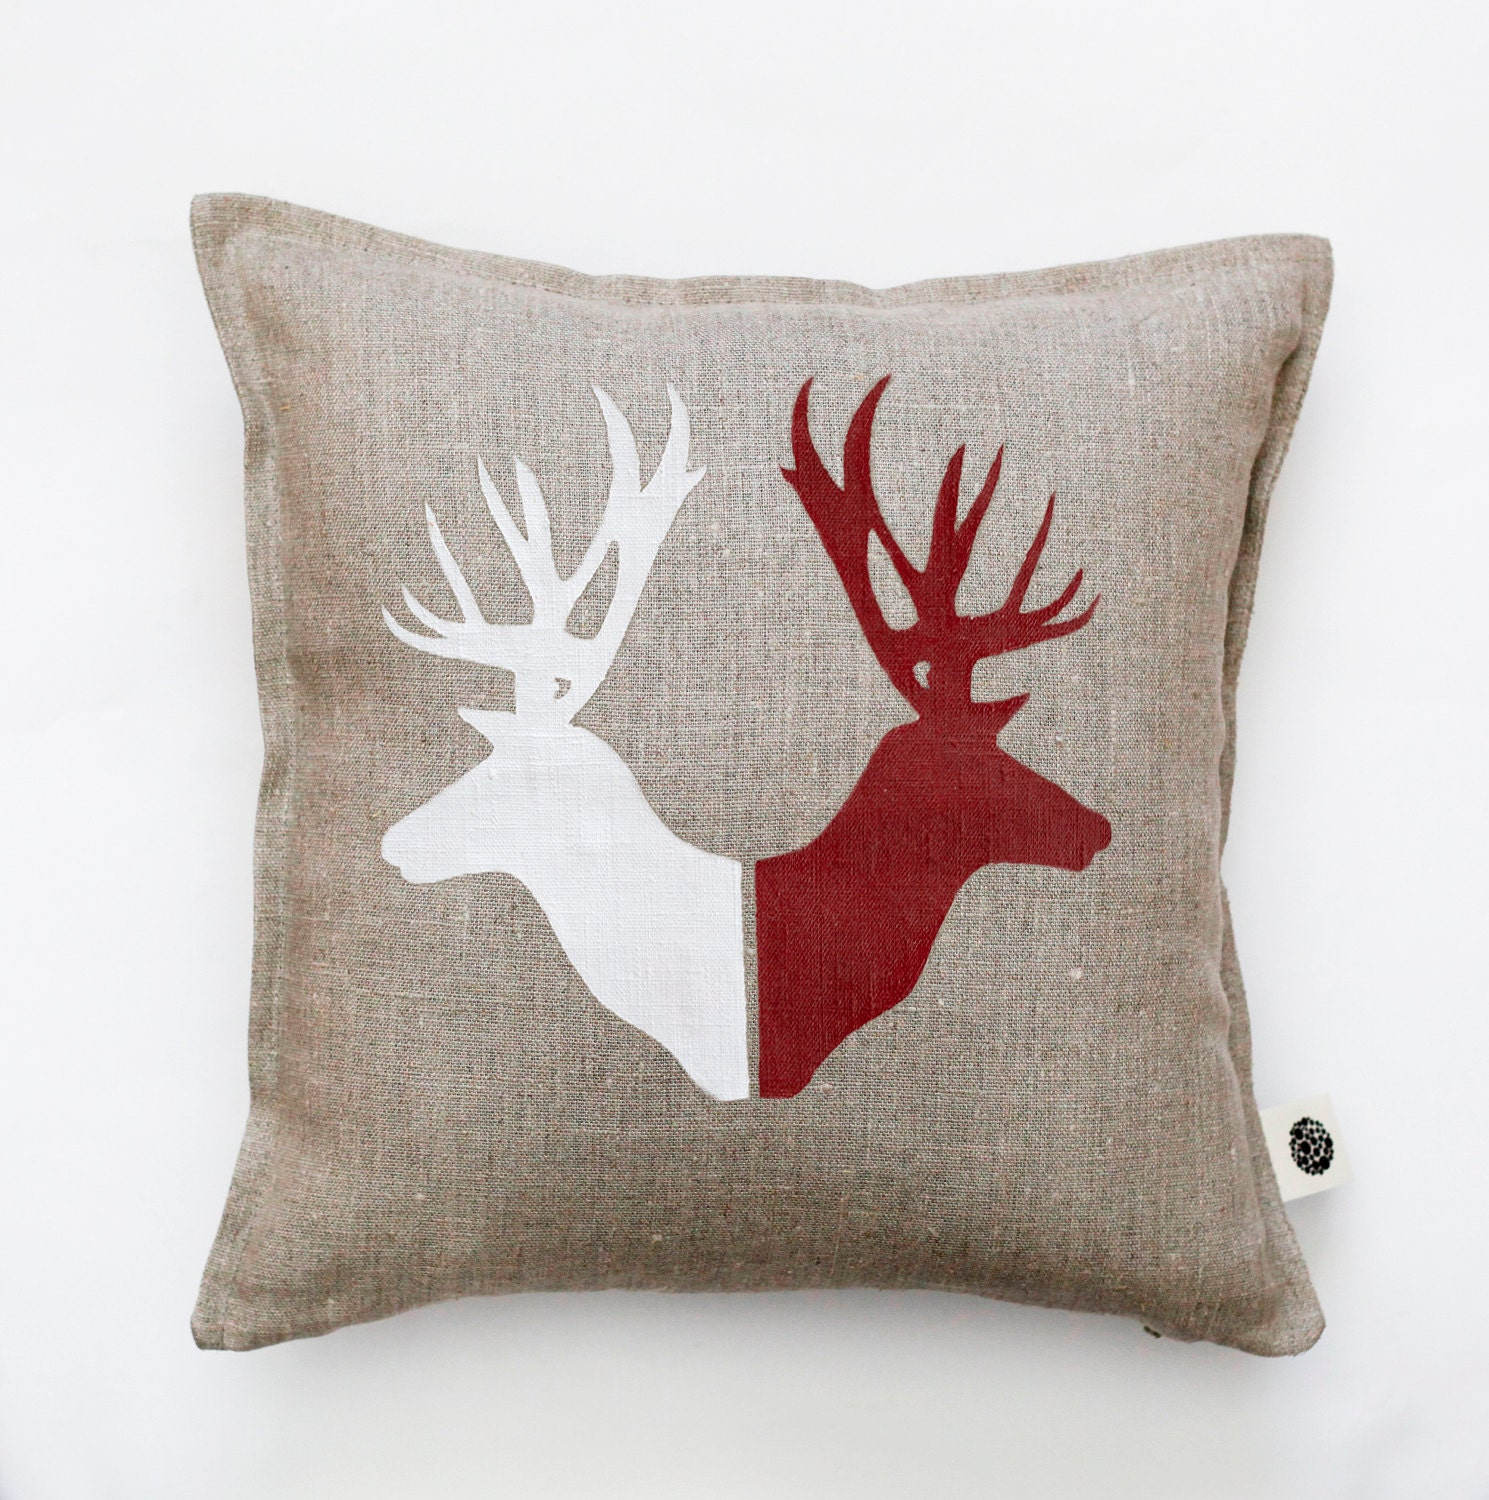 Throw Pillows Deer : Deer heads throw pillow for rustic bed for camping pillows